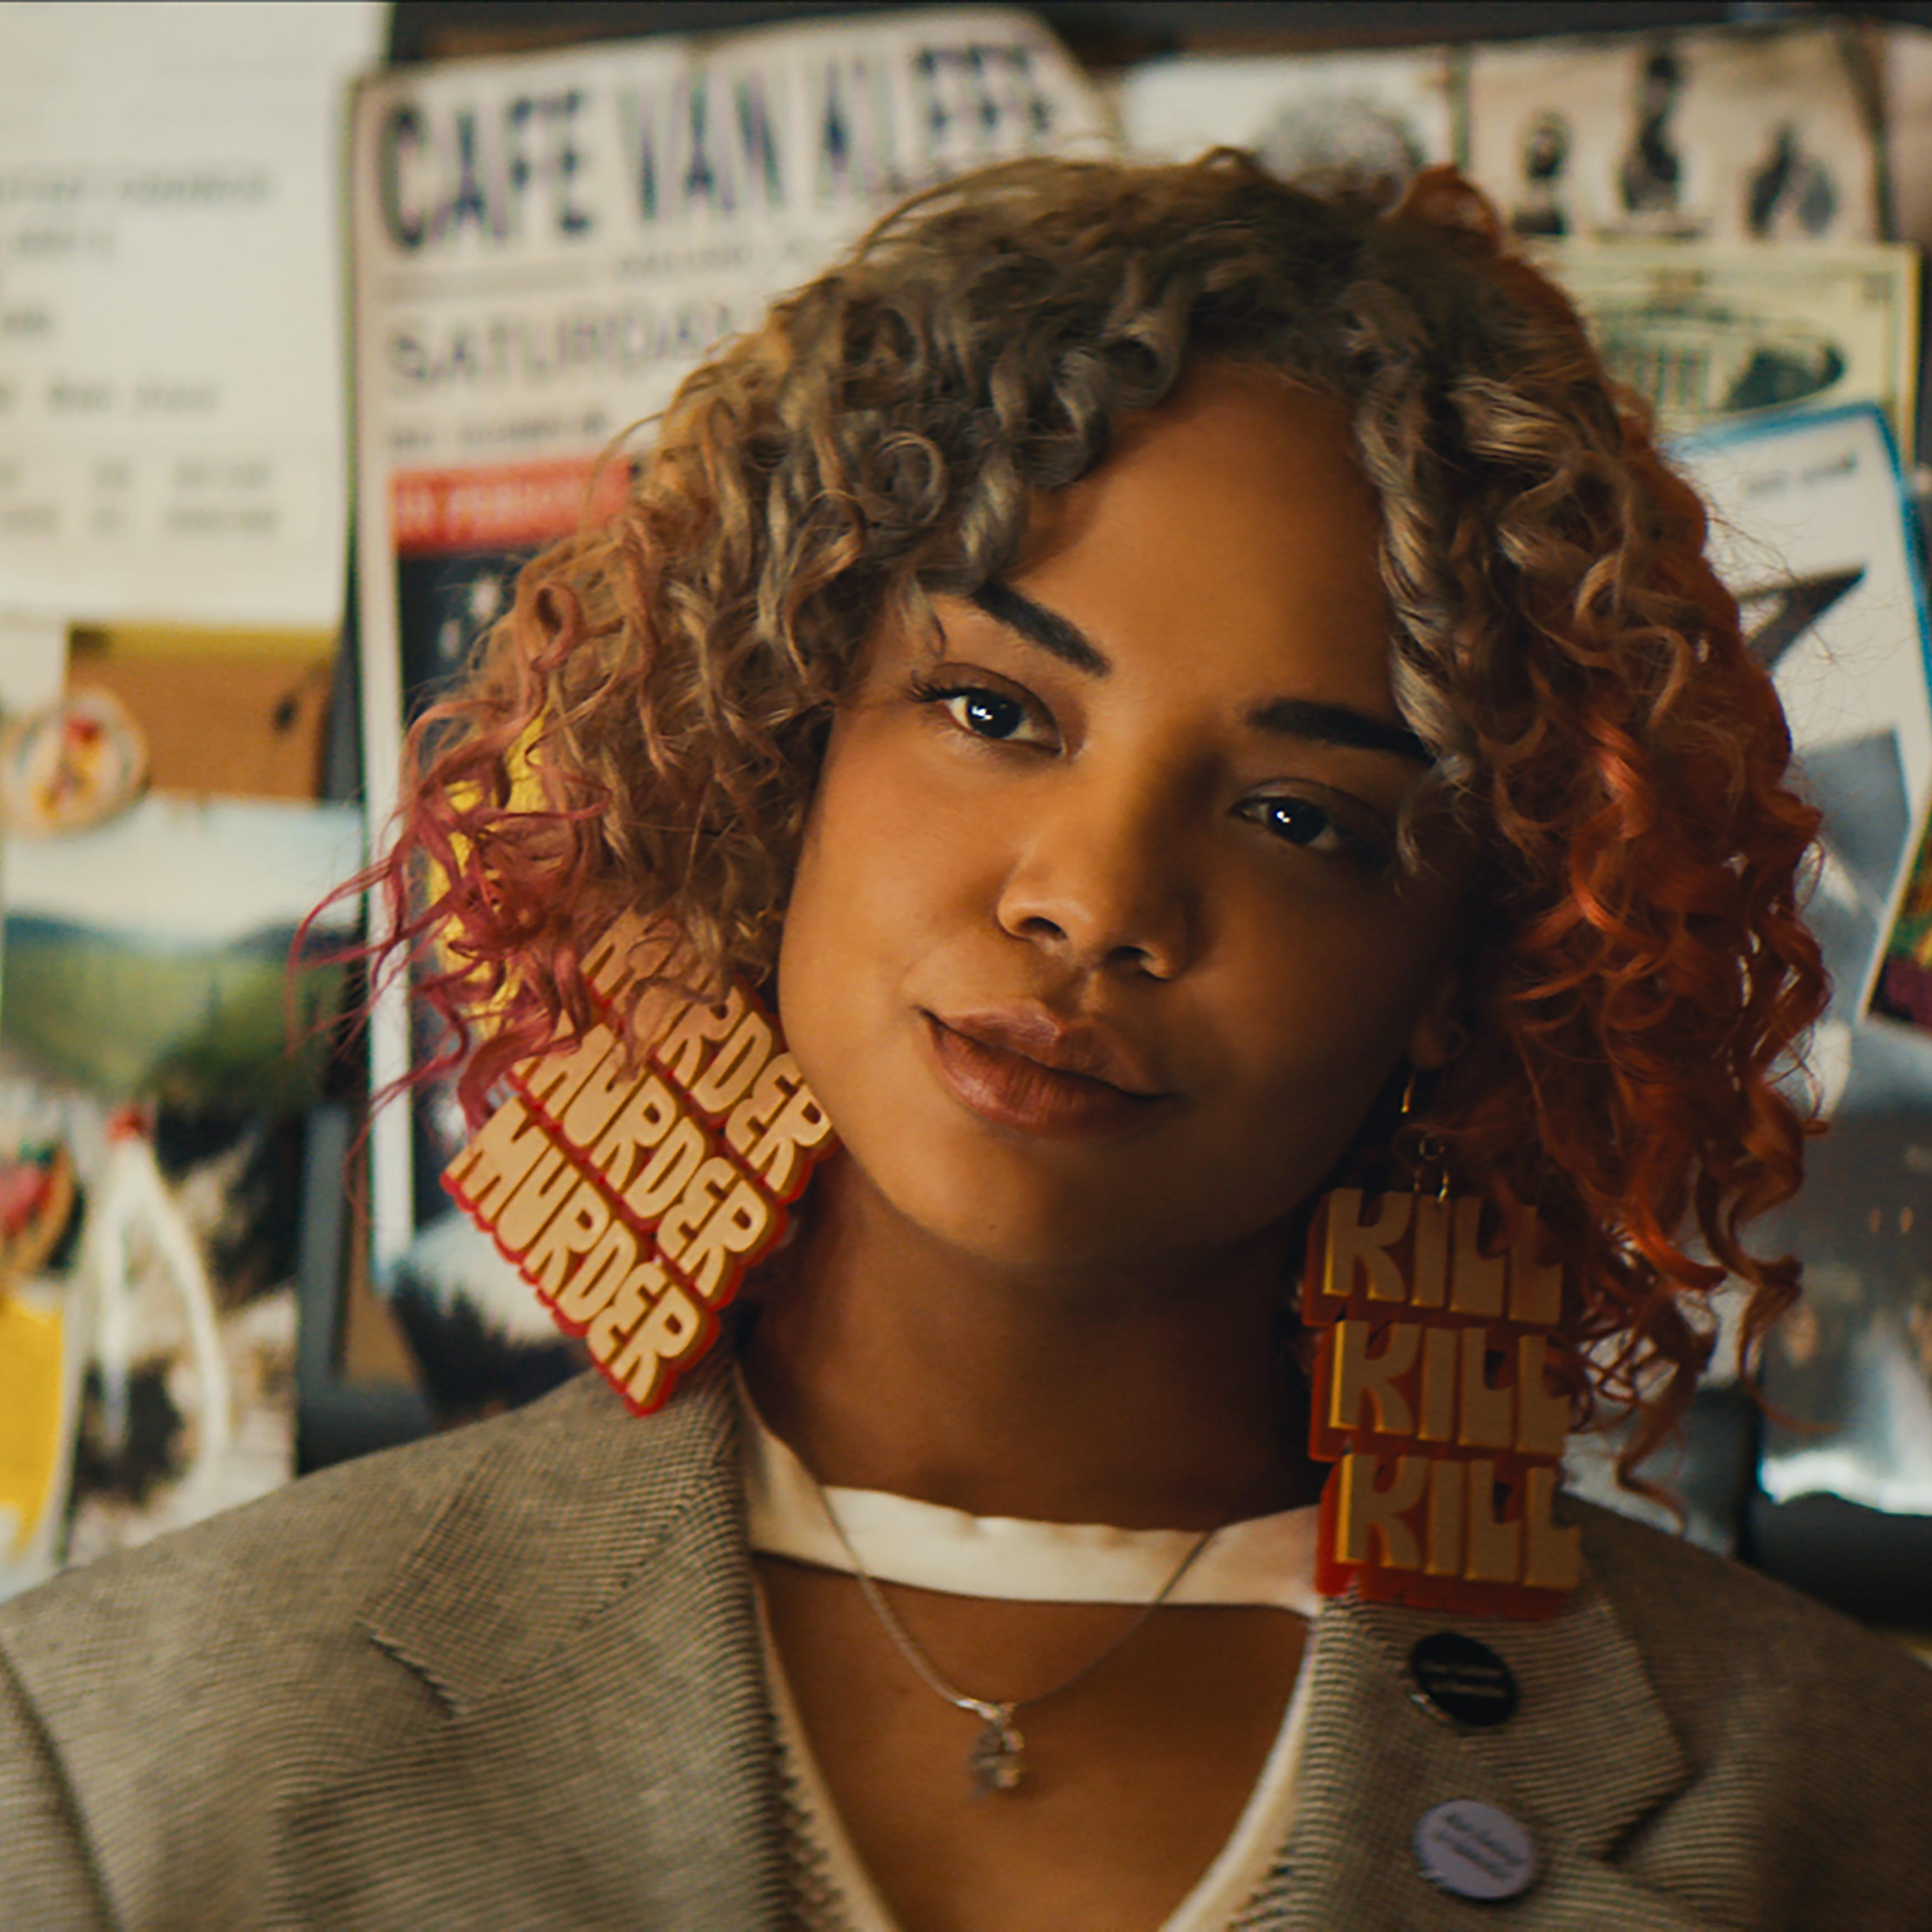 Best movies 2018: Sorry to Bother You, Hereditary and beyond